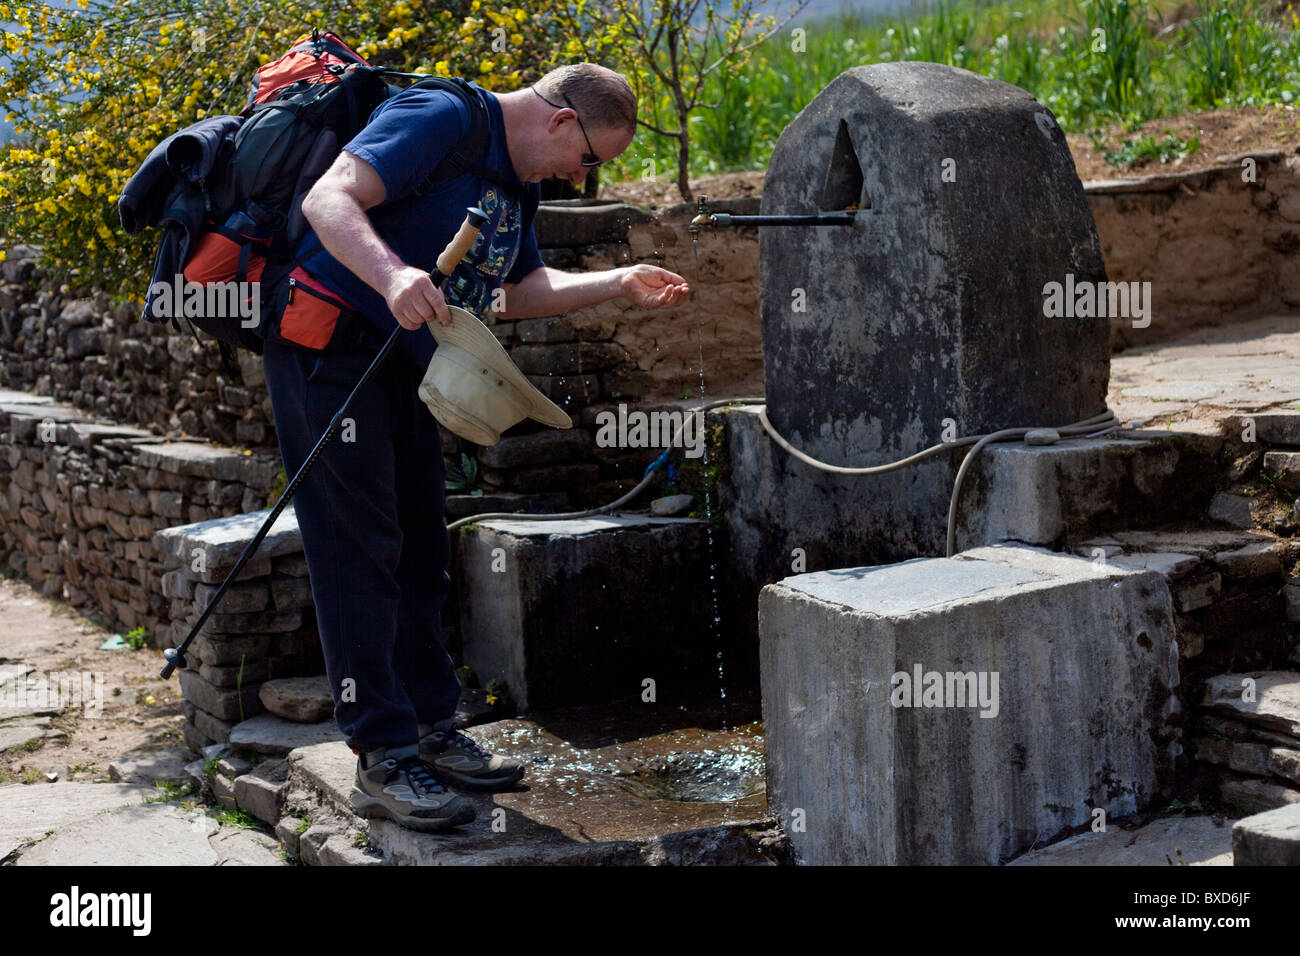 A male trekker stops at a village water fountain to wet his head. - Stock Image